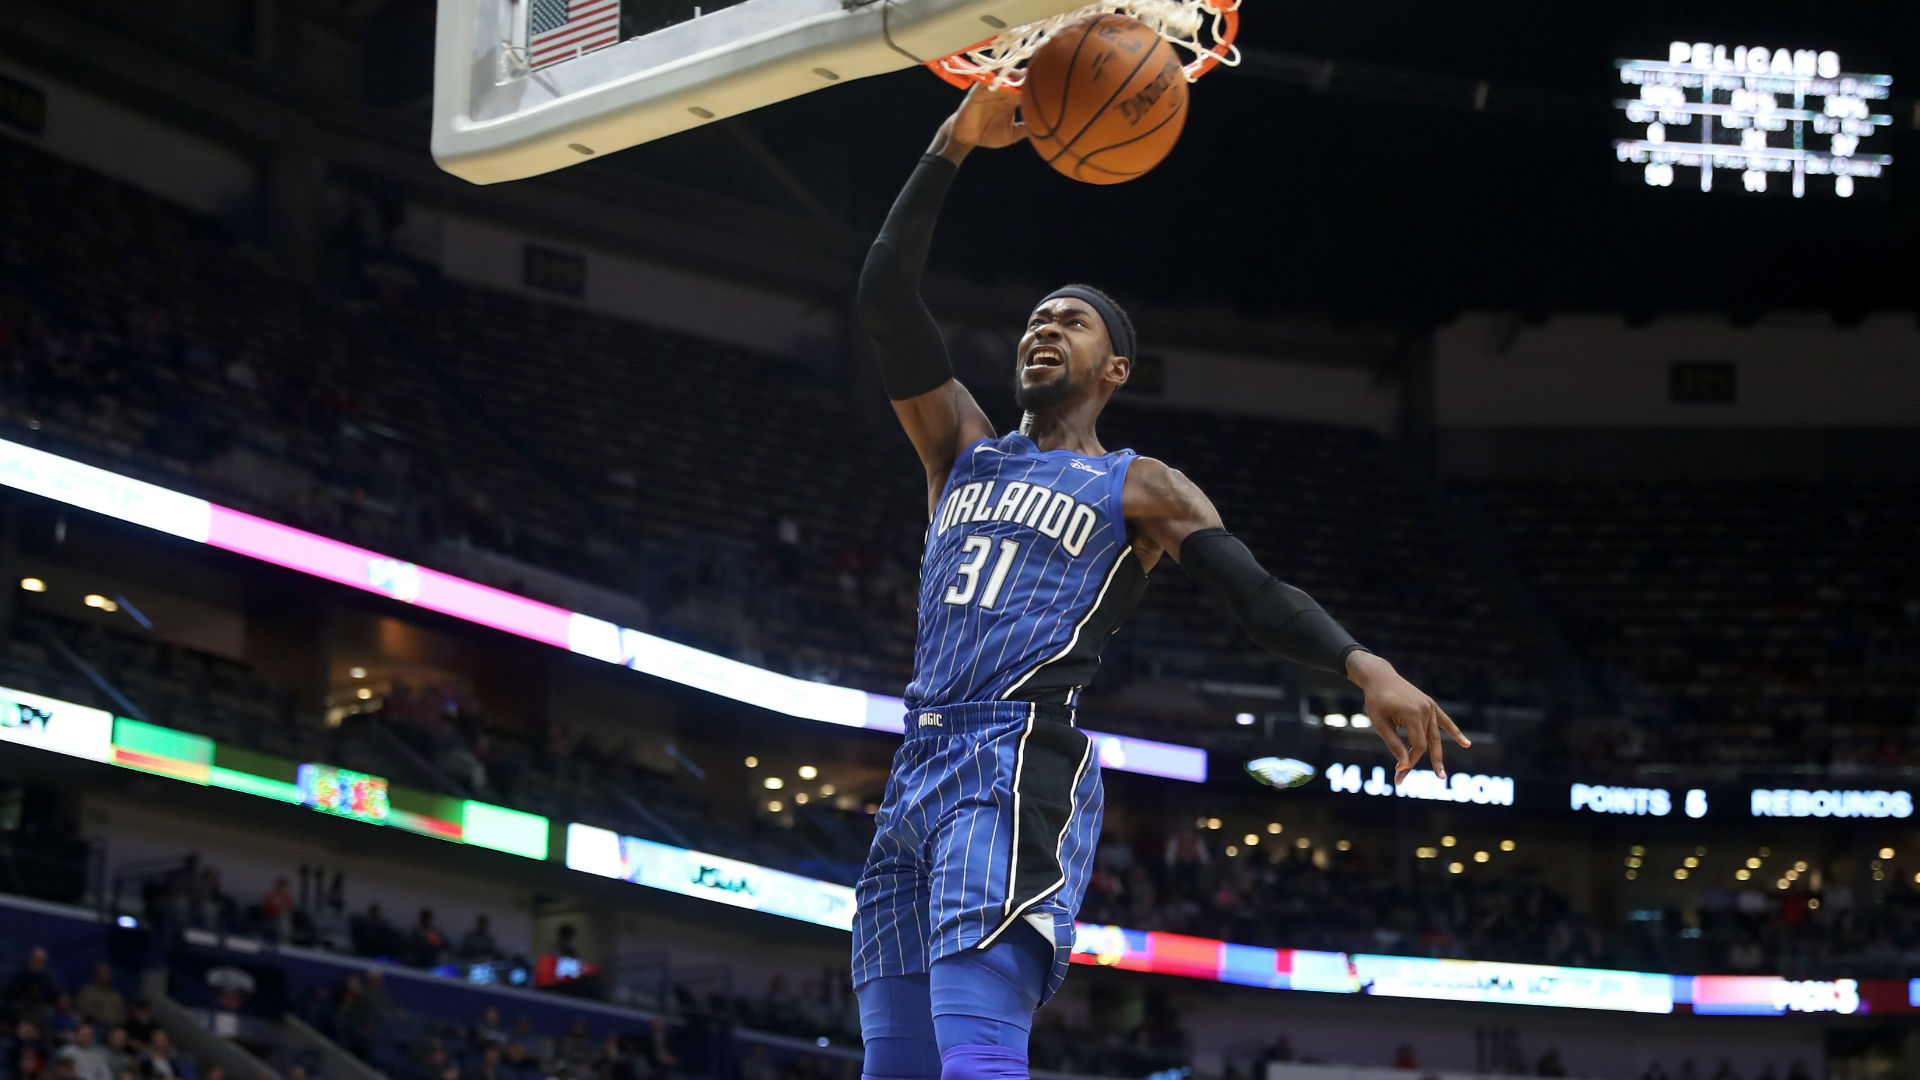 Rampant Magic move up in playoff race